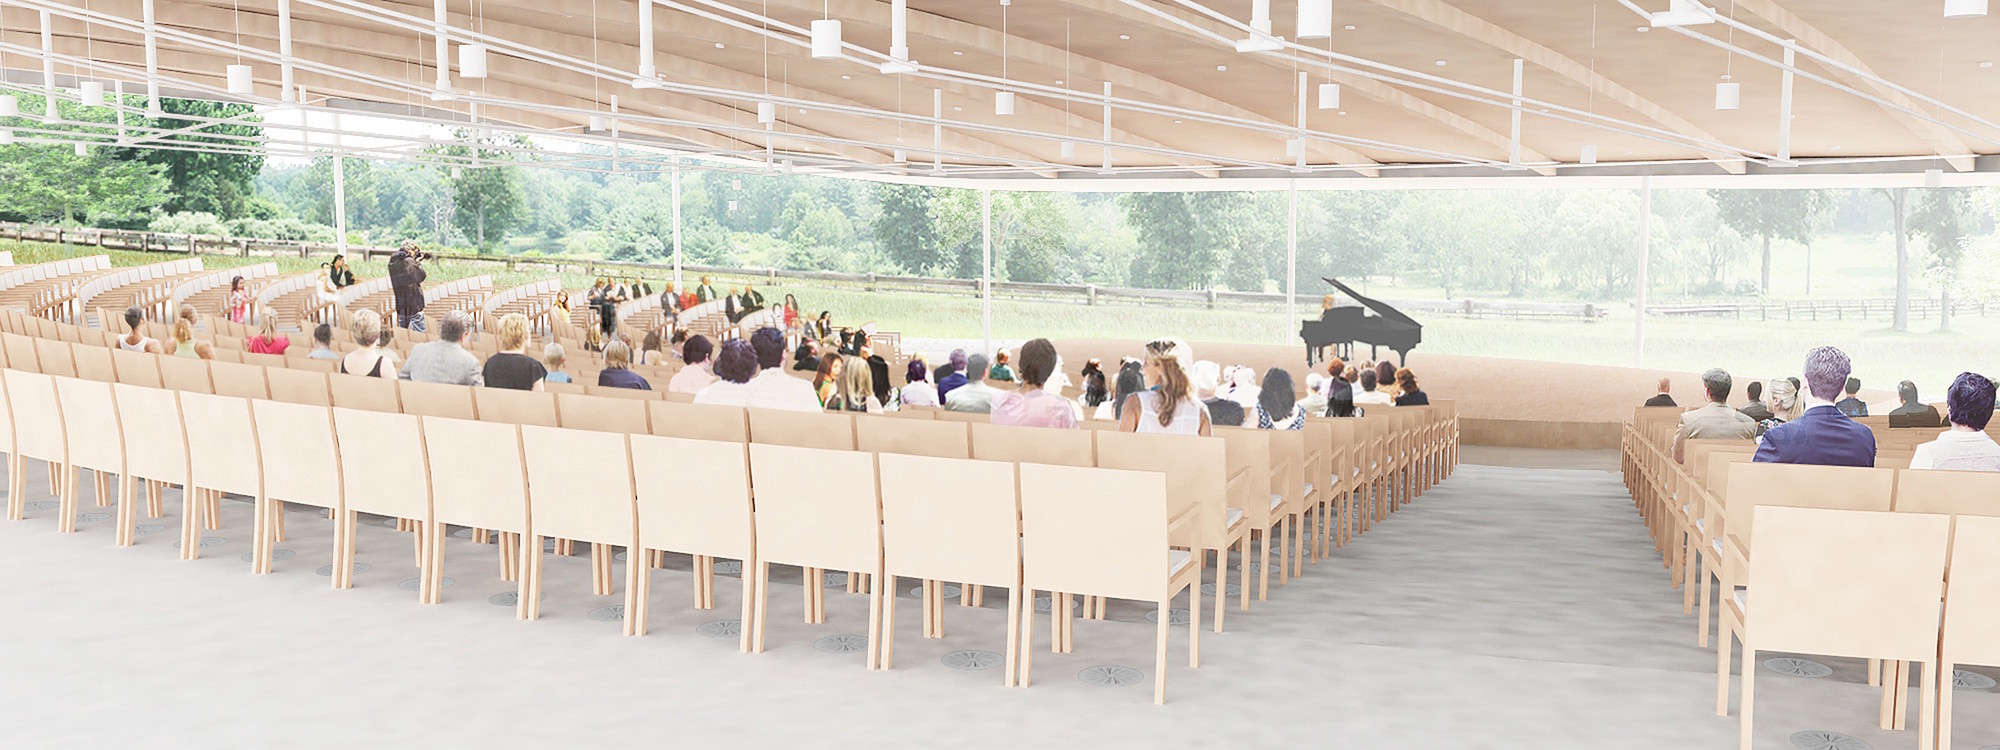 Interior view of the sanctuary/ indoor amphitheater. Image Courtesy of Grace Farms and SANAA